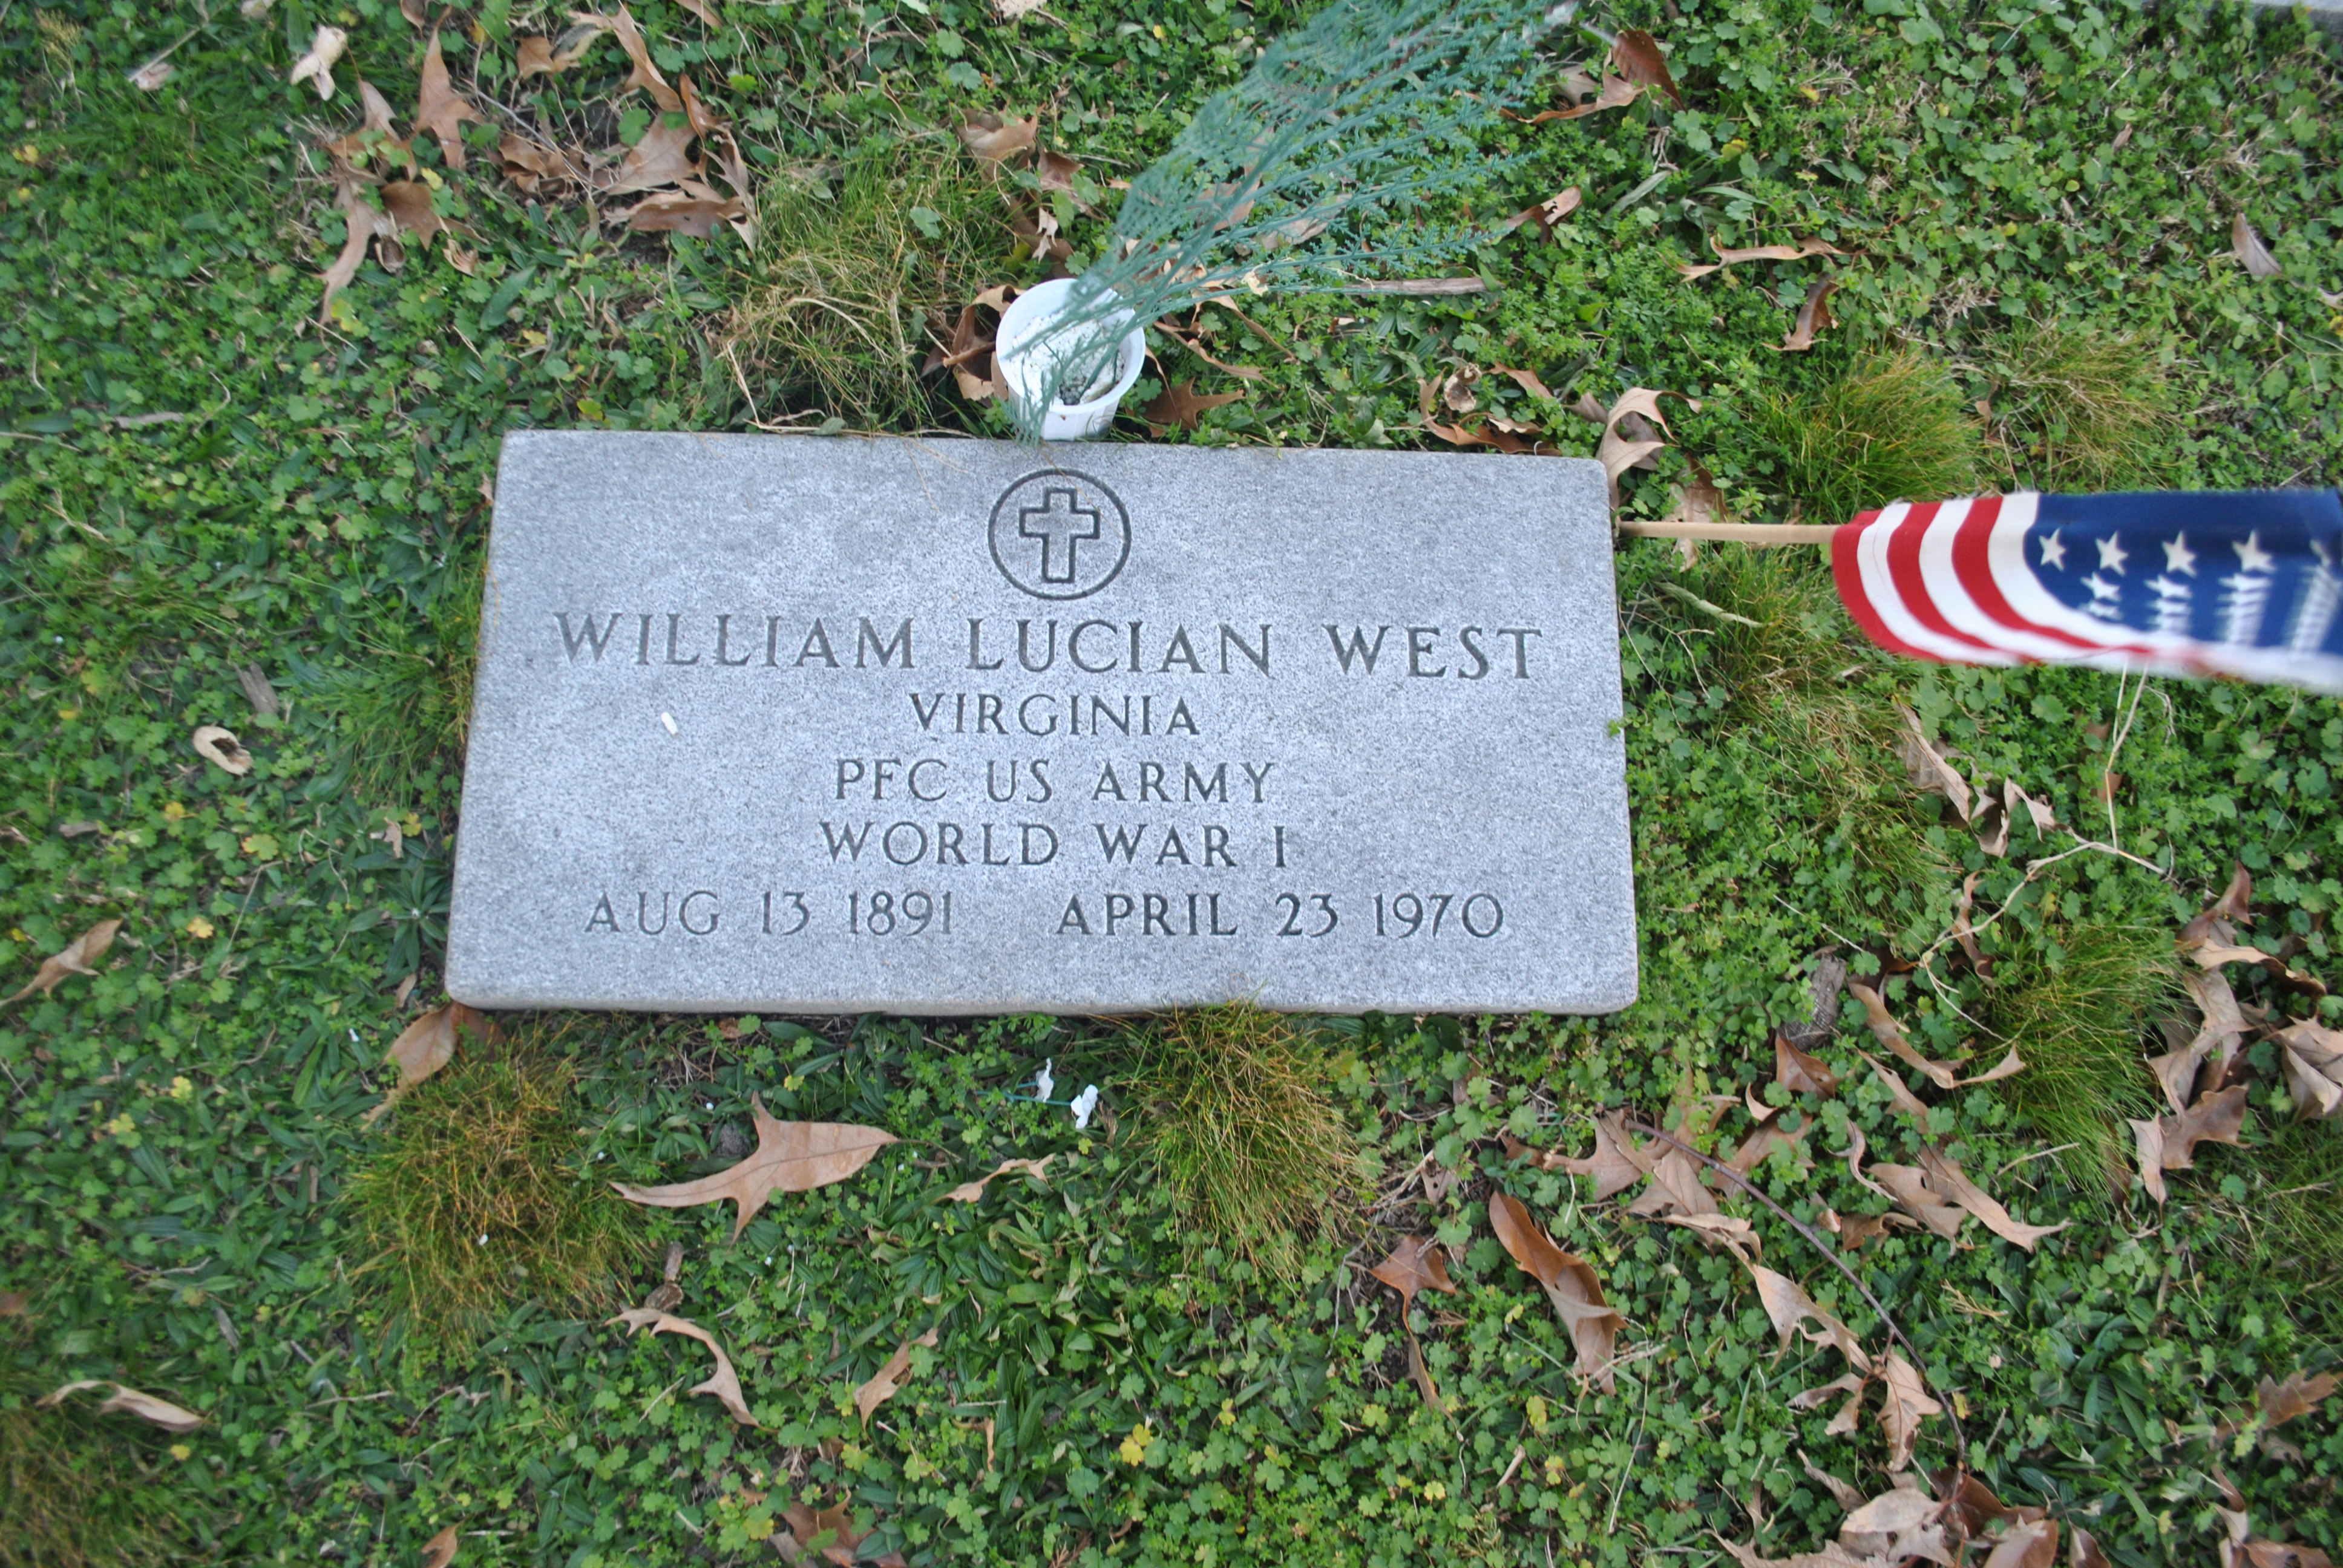 William Lucian West